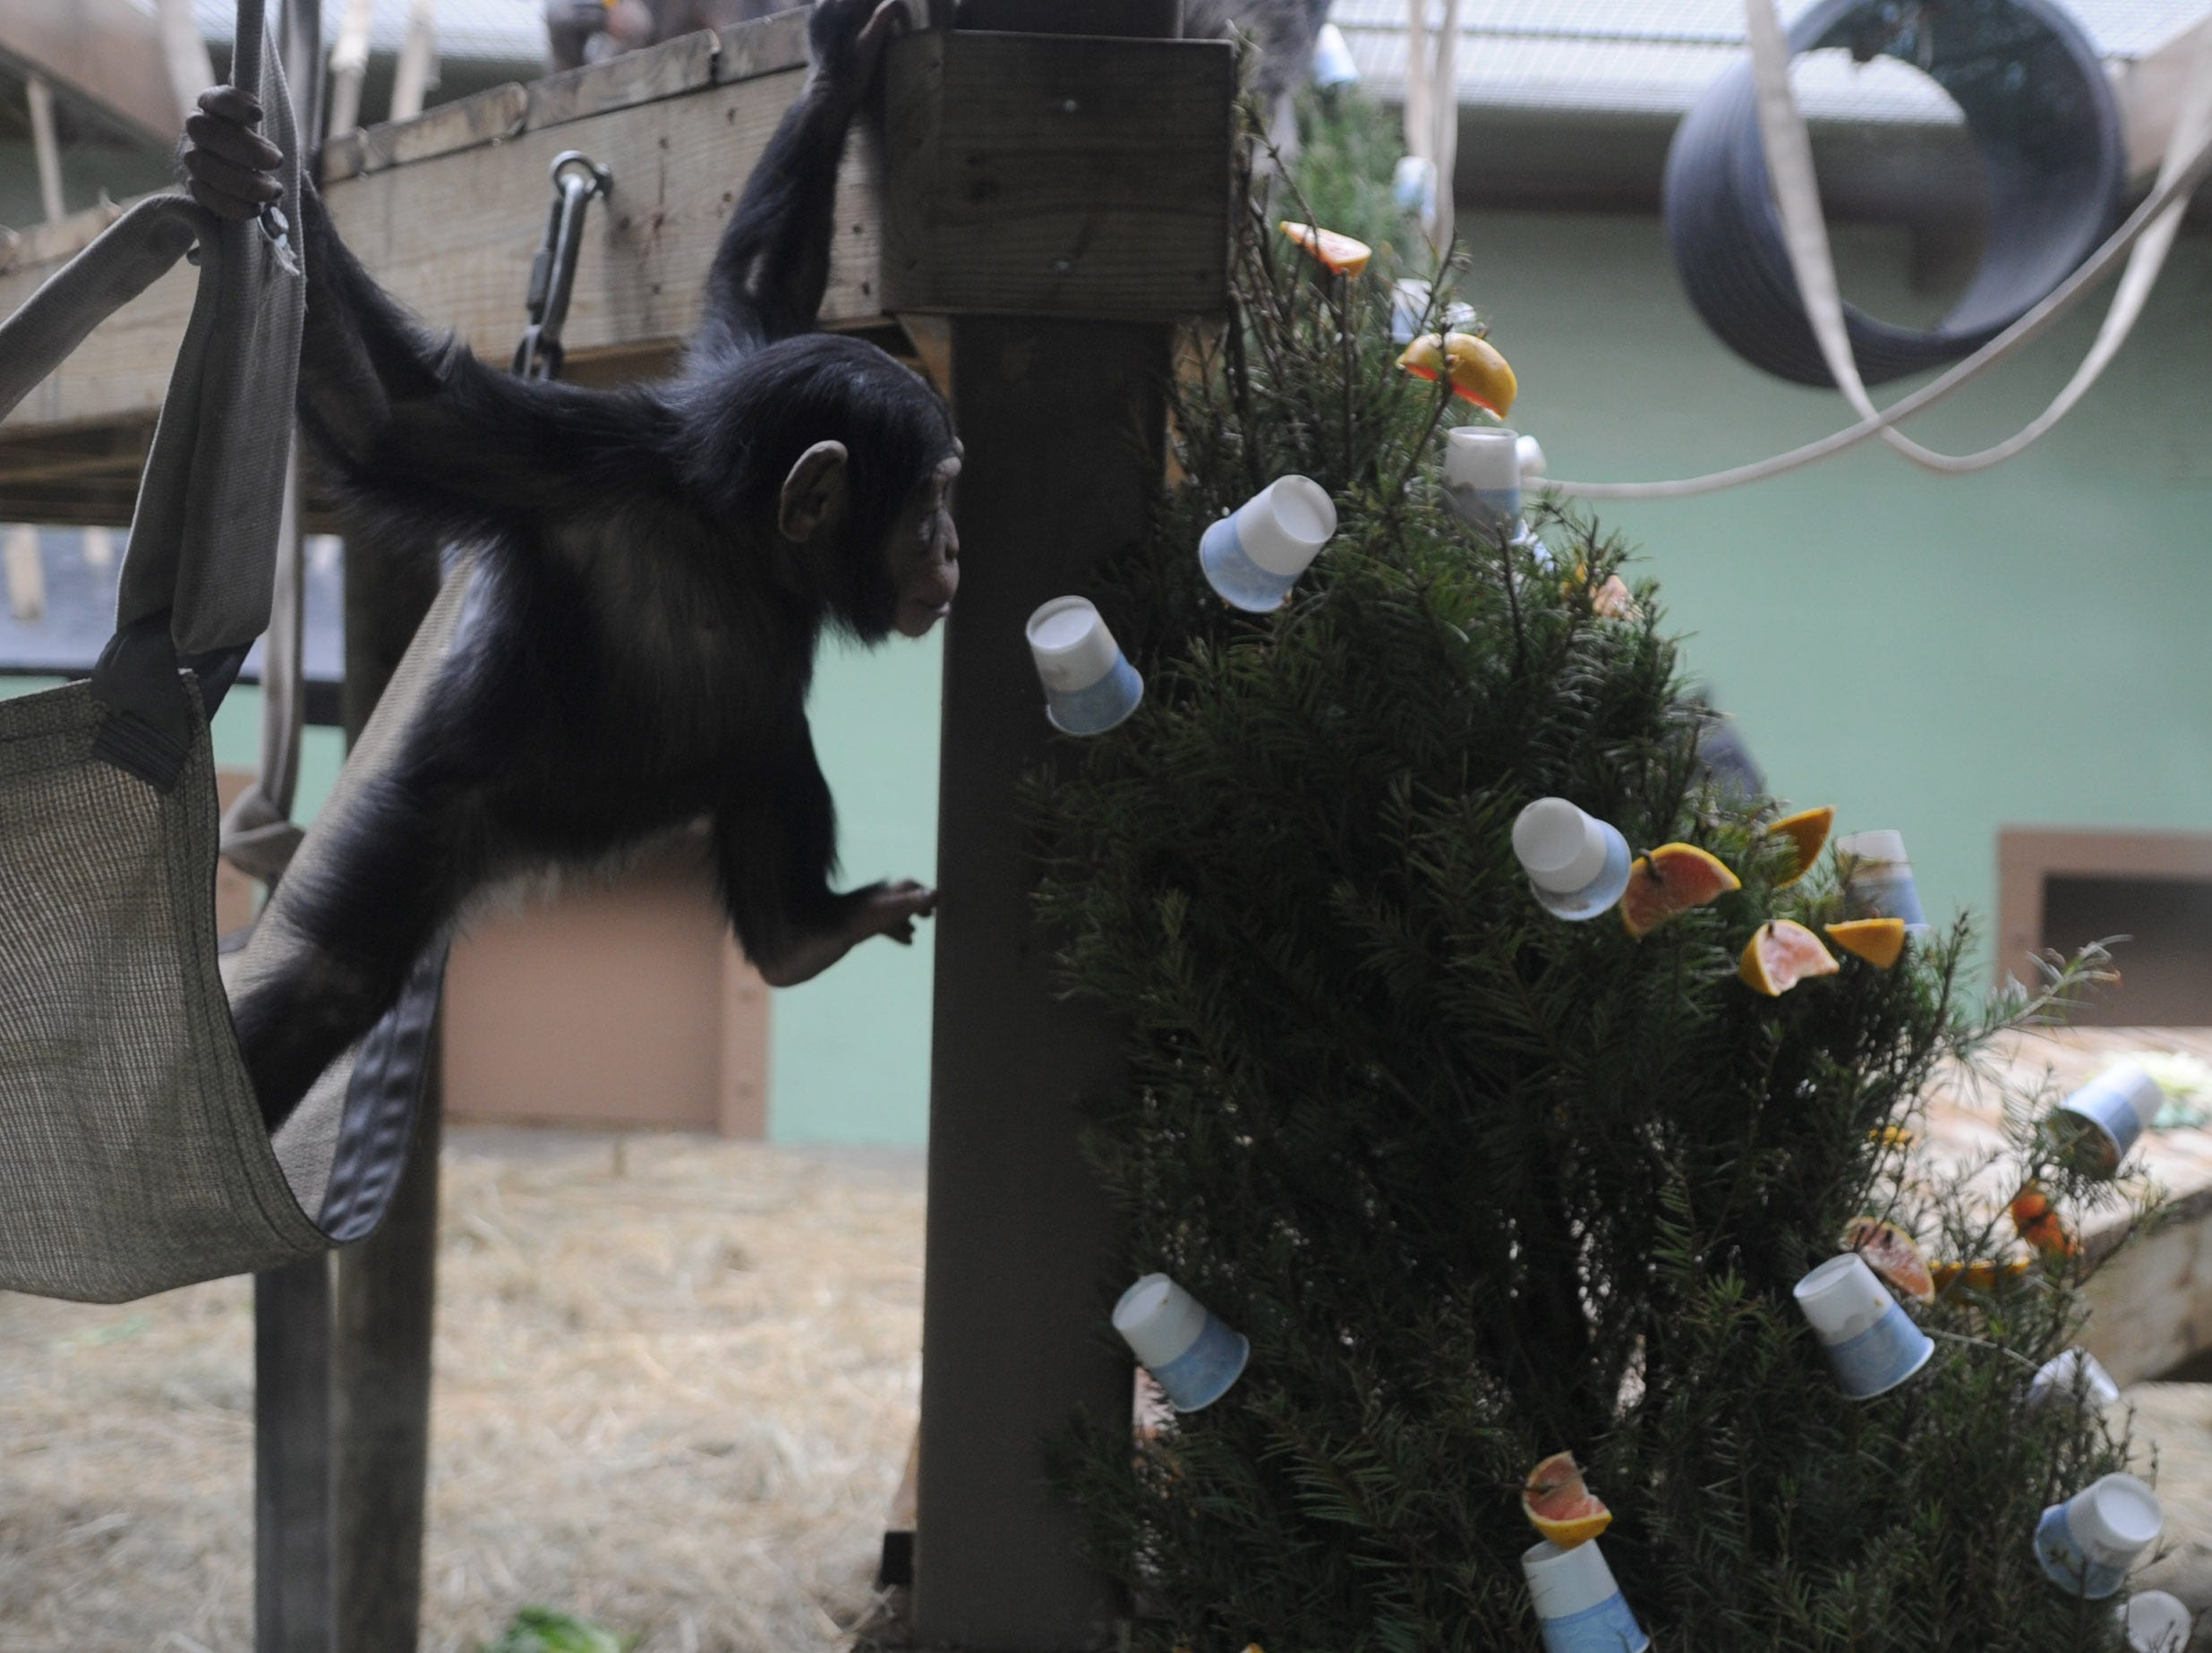 Two year-old chimpanzee George swings to check out a Christmas tree covered in treats at the Knoxville Zoo on Friday, Jan. 7, 2011. The trees were donated to the zoo from various stores like Home Depot or Lowes and different animals eat or play with them for weeks after the holidays. The treats consist of oranges and peanut butter.